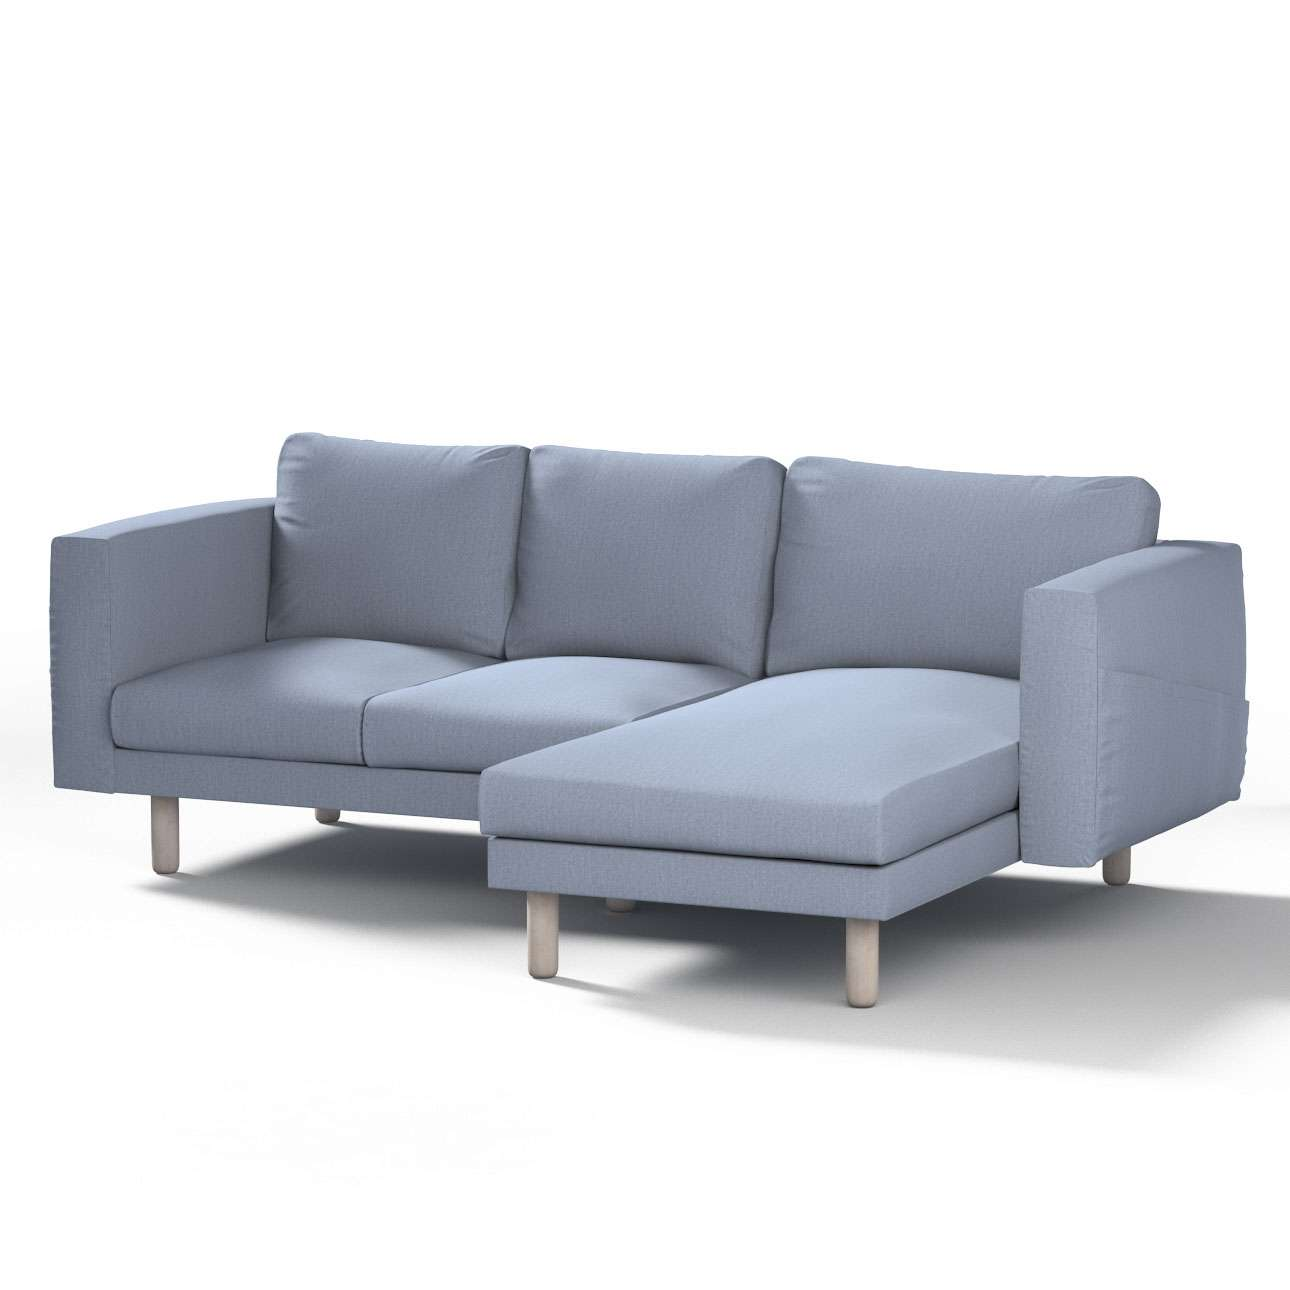 norsborg bezug f r 3 sitzer sofa mit recamiere silber blau dekoria. Black Bedroom Furniture Sets. Home Design Ideas